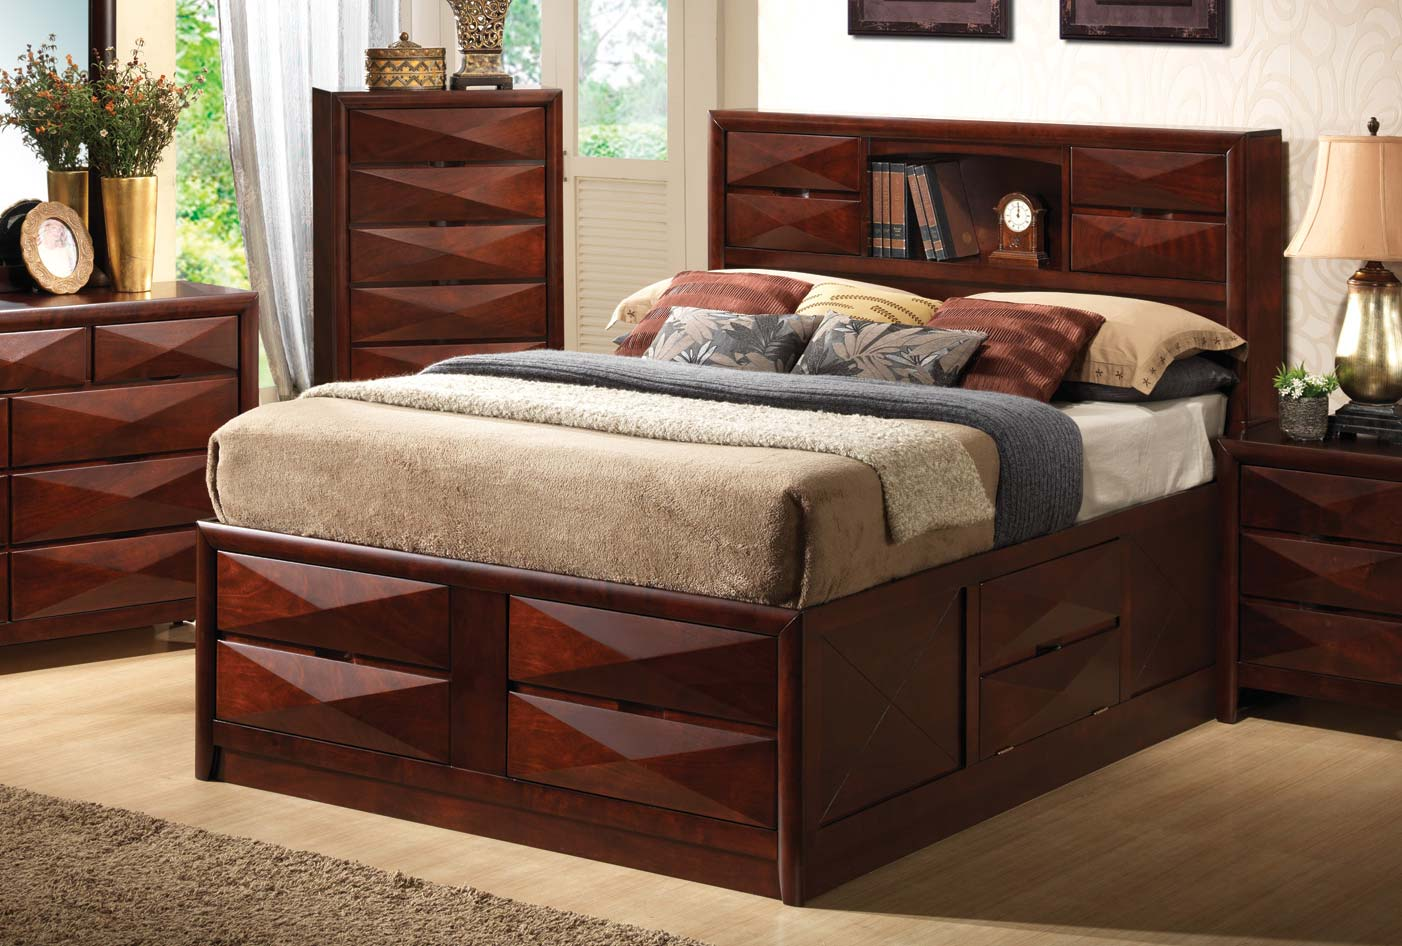 Coaster Bree Bookcase Storage Bed - Brown Cherry